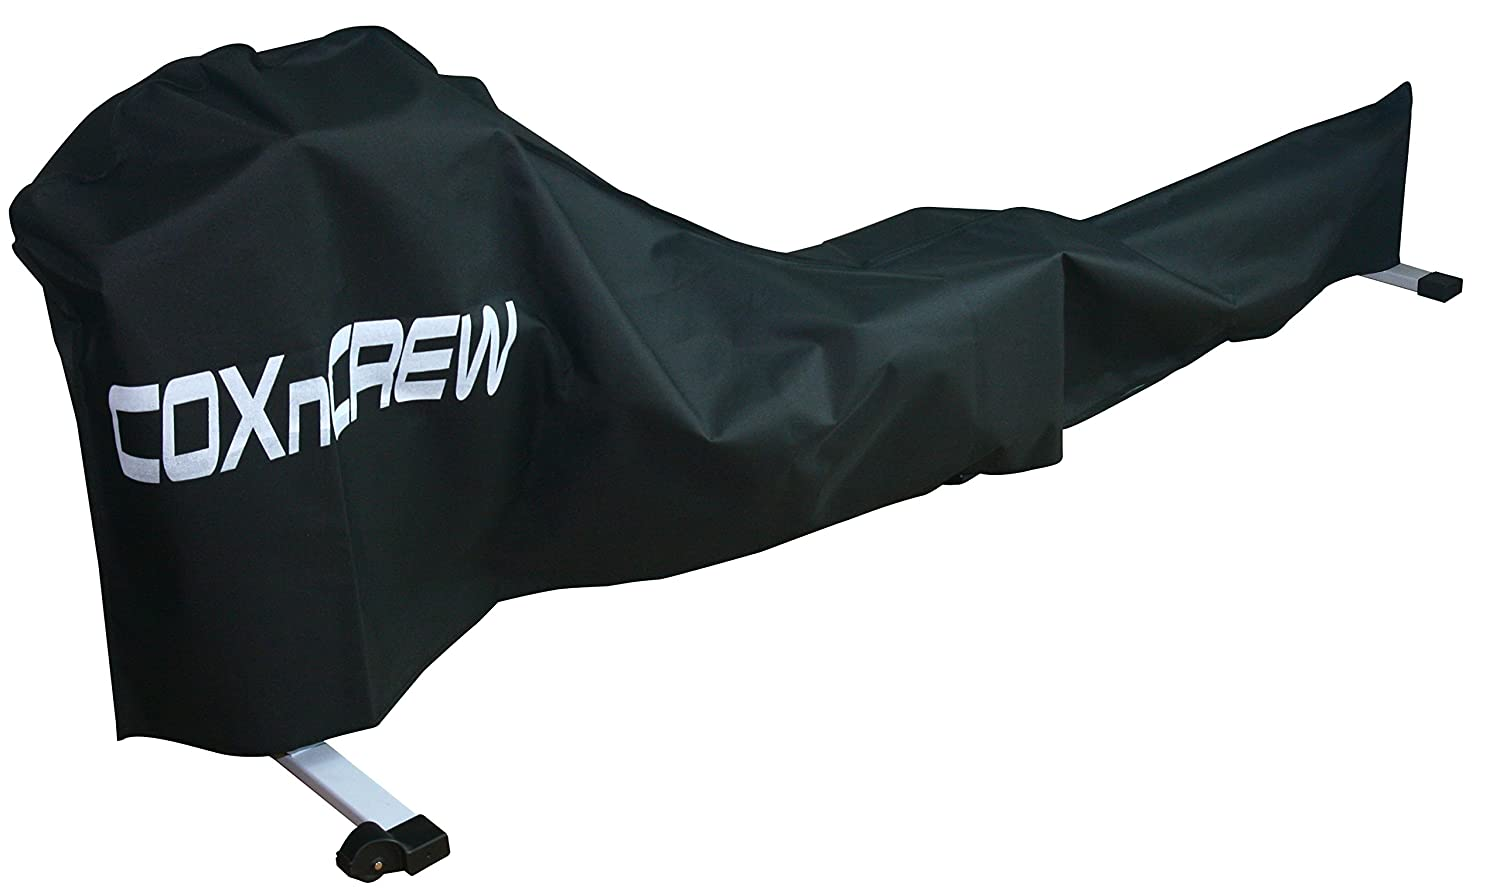 Coxncrew Durable Rowing Machine Cover Perfectly Fits With Concept 2 Model C/D Kay Trading